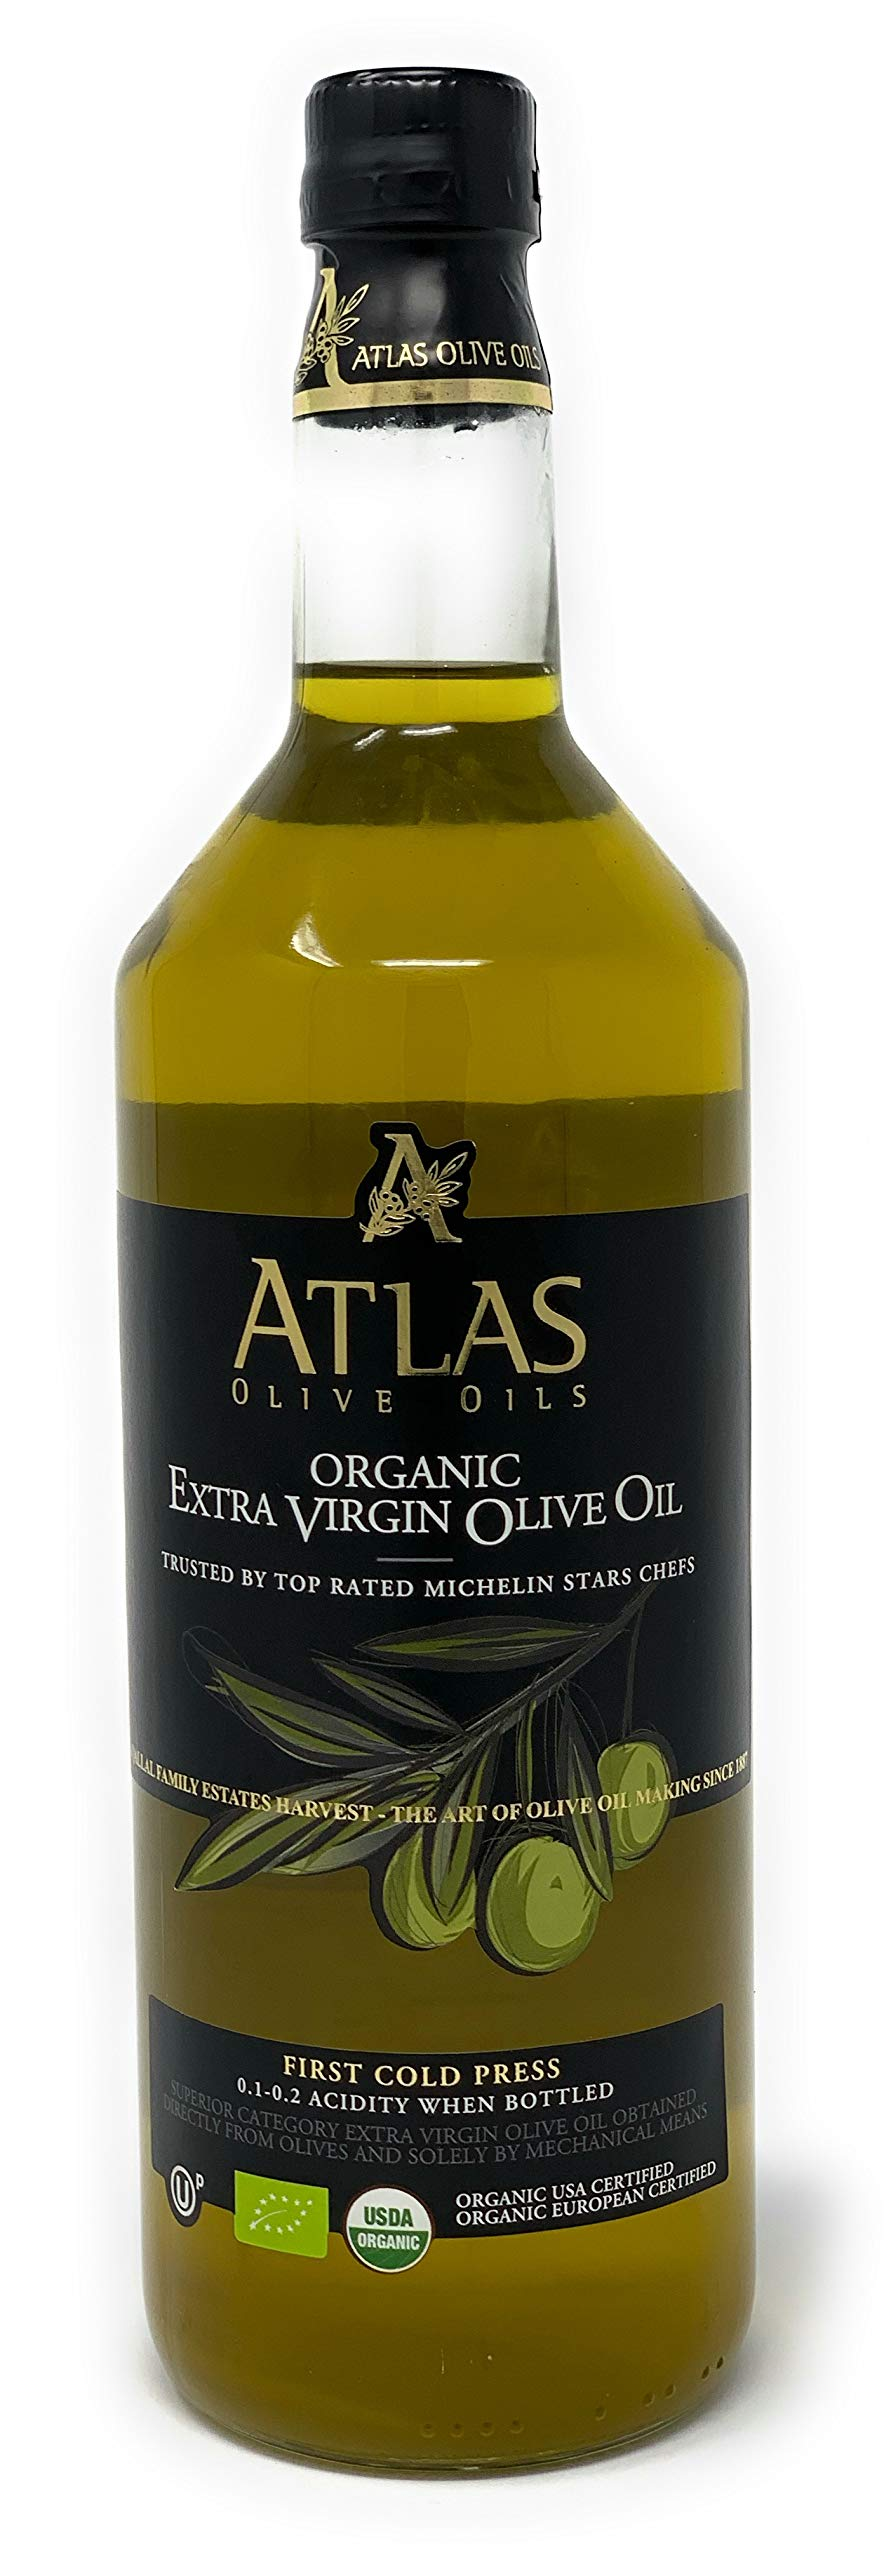 Organic Extra Virgin Olive Oil: First Cold Pressed EVOO Trusted by Top Michelin Stars Chefs for cooking, Organic USA Certified, Organic European Certified, 0.1-0.2 Acidity from Olives in Morocco